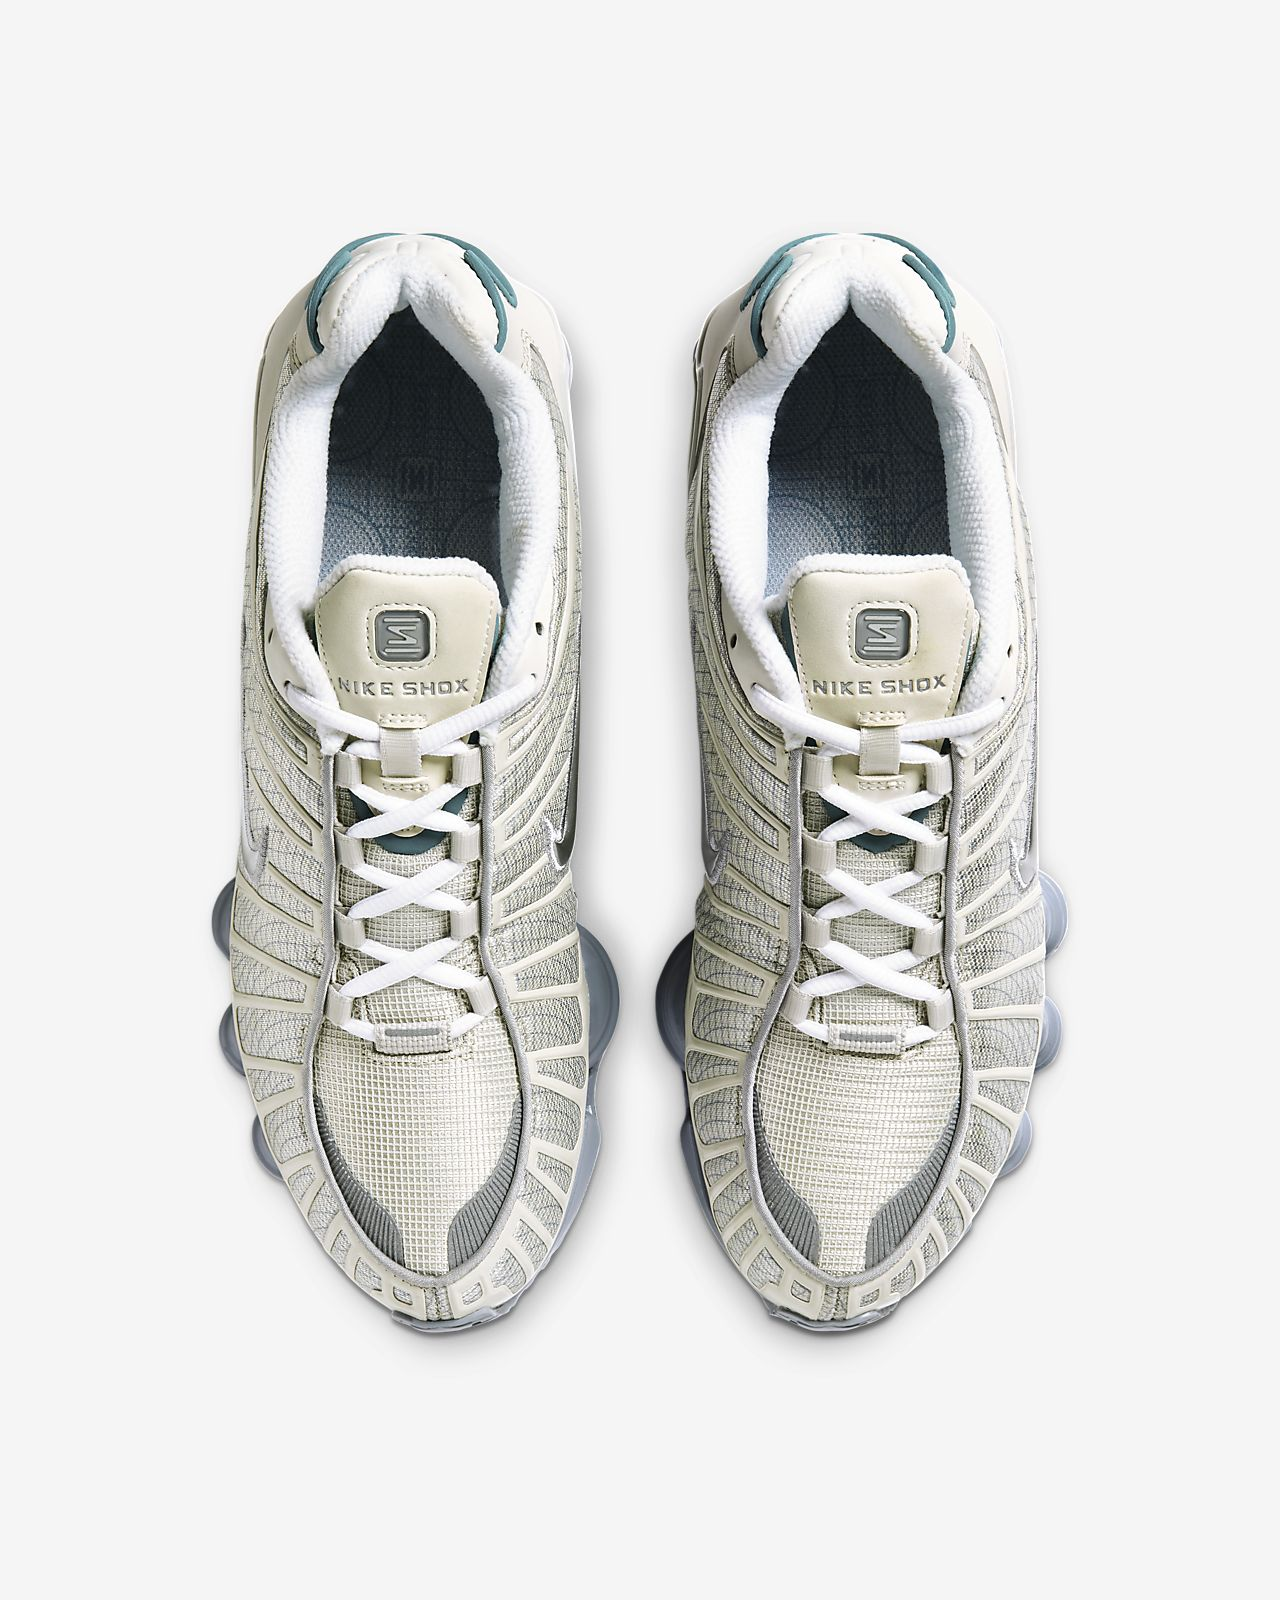 The Nike Air Max Tailwind IV Arrives In Cool Grey